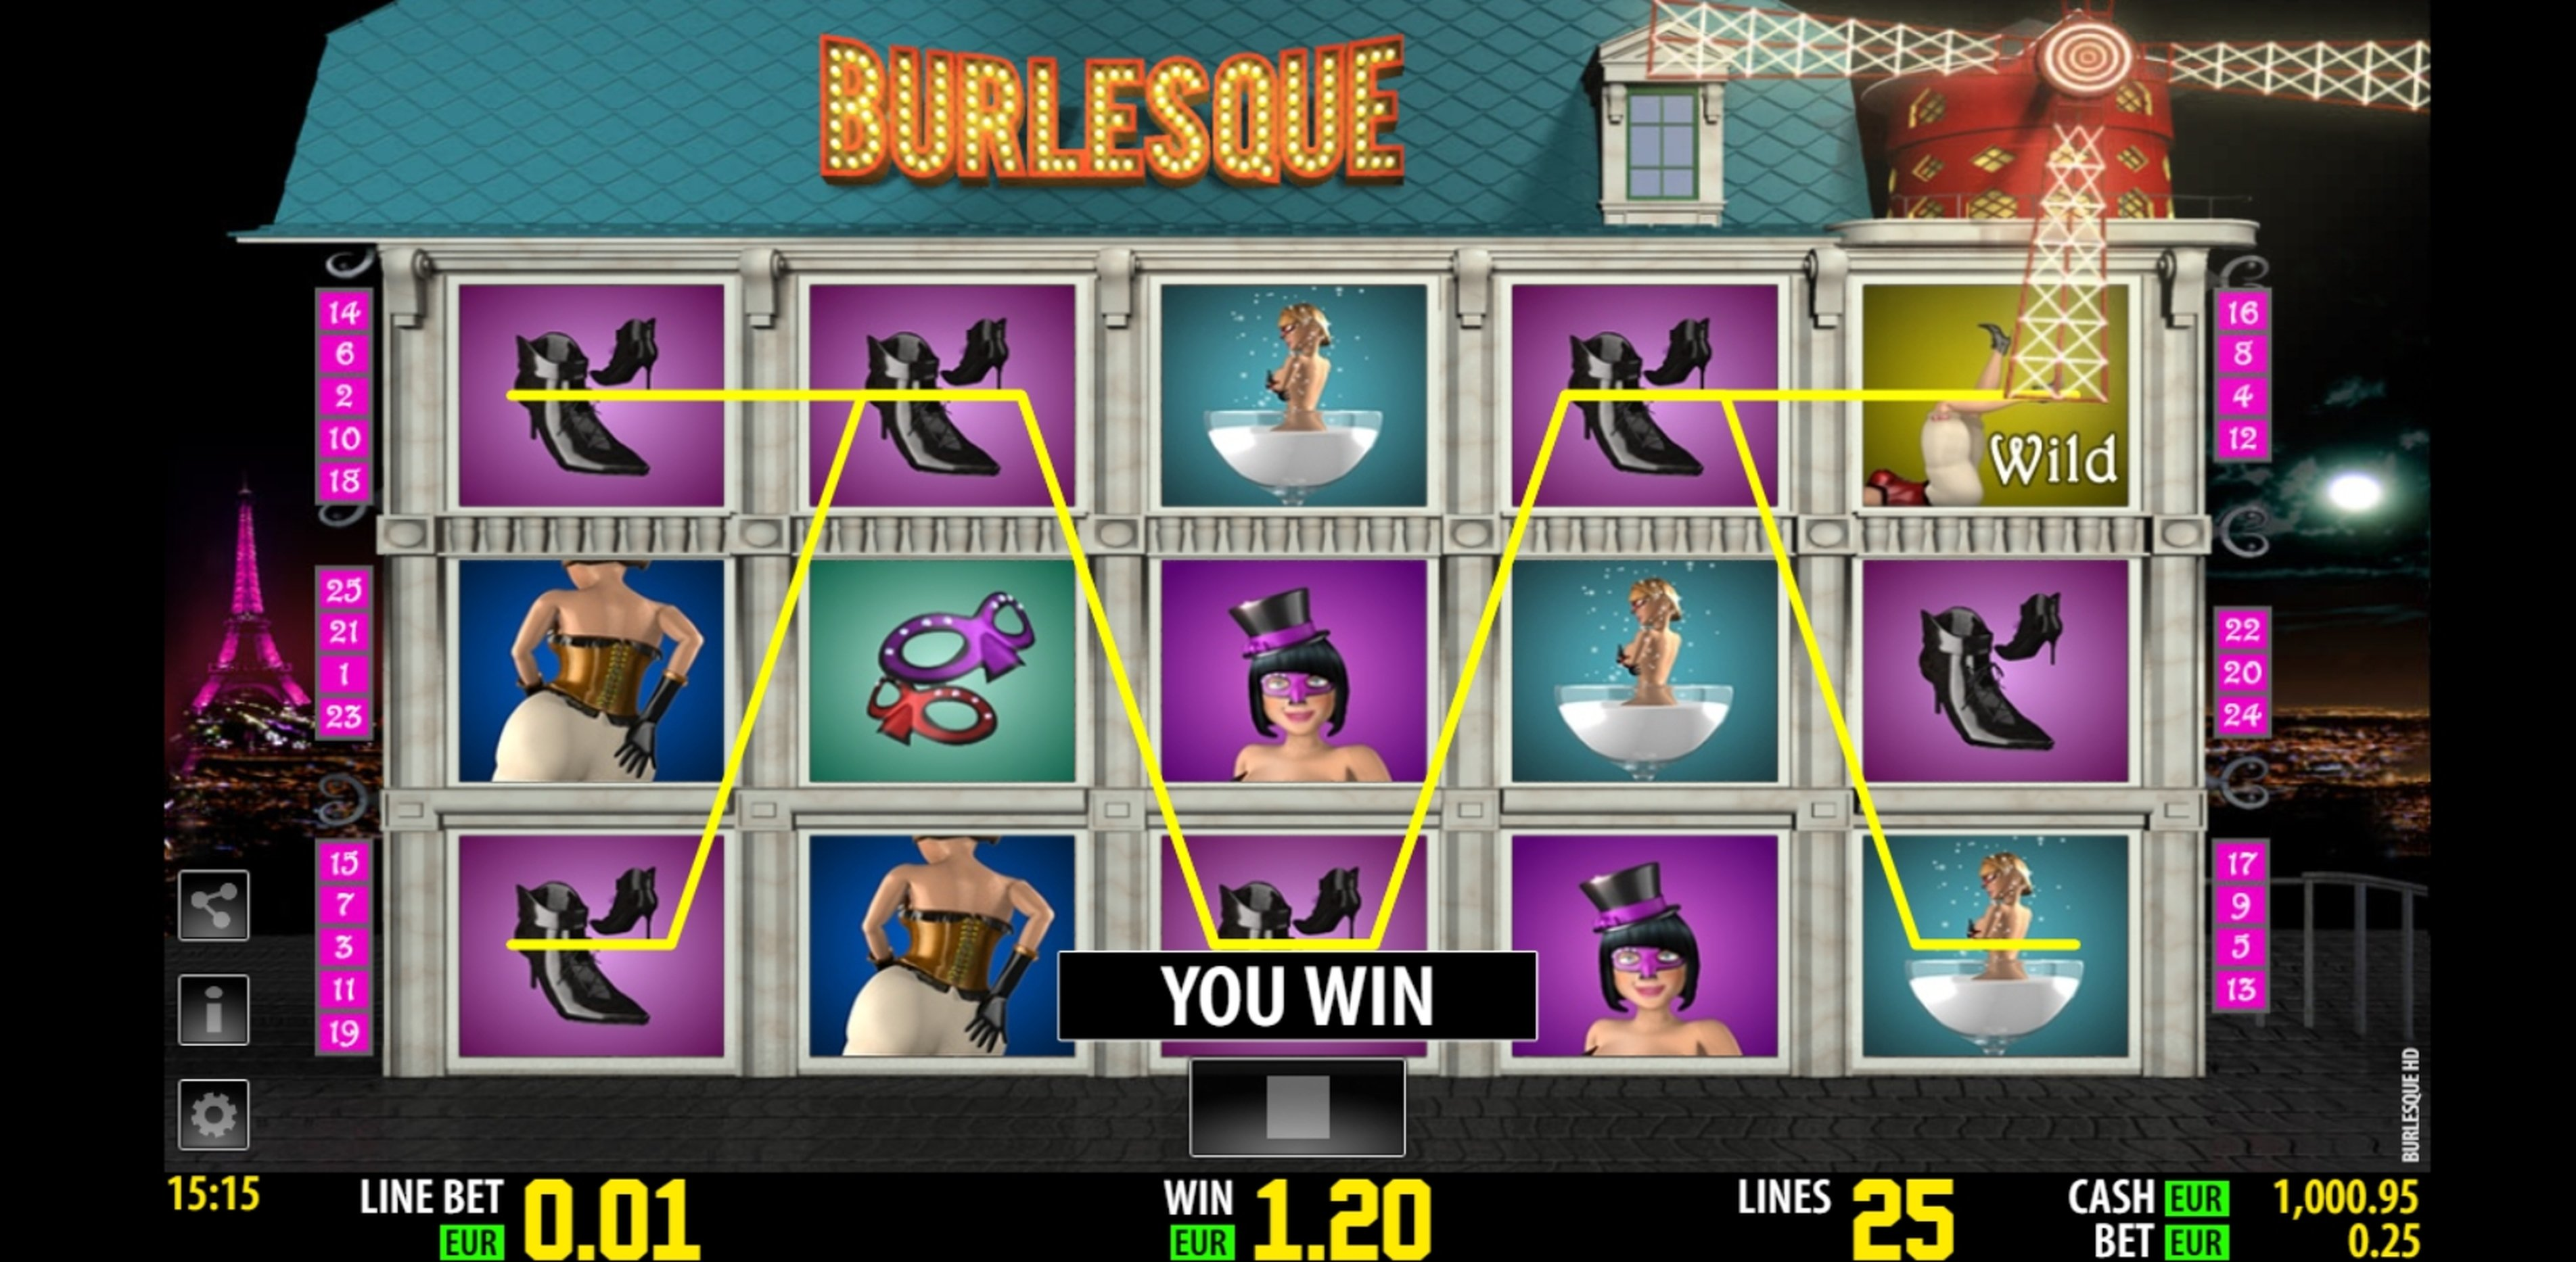 Win Money in Burlesque Free Slot Game by Portomaso Gaming